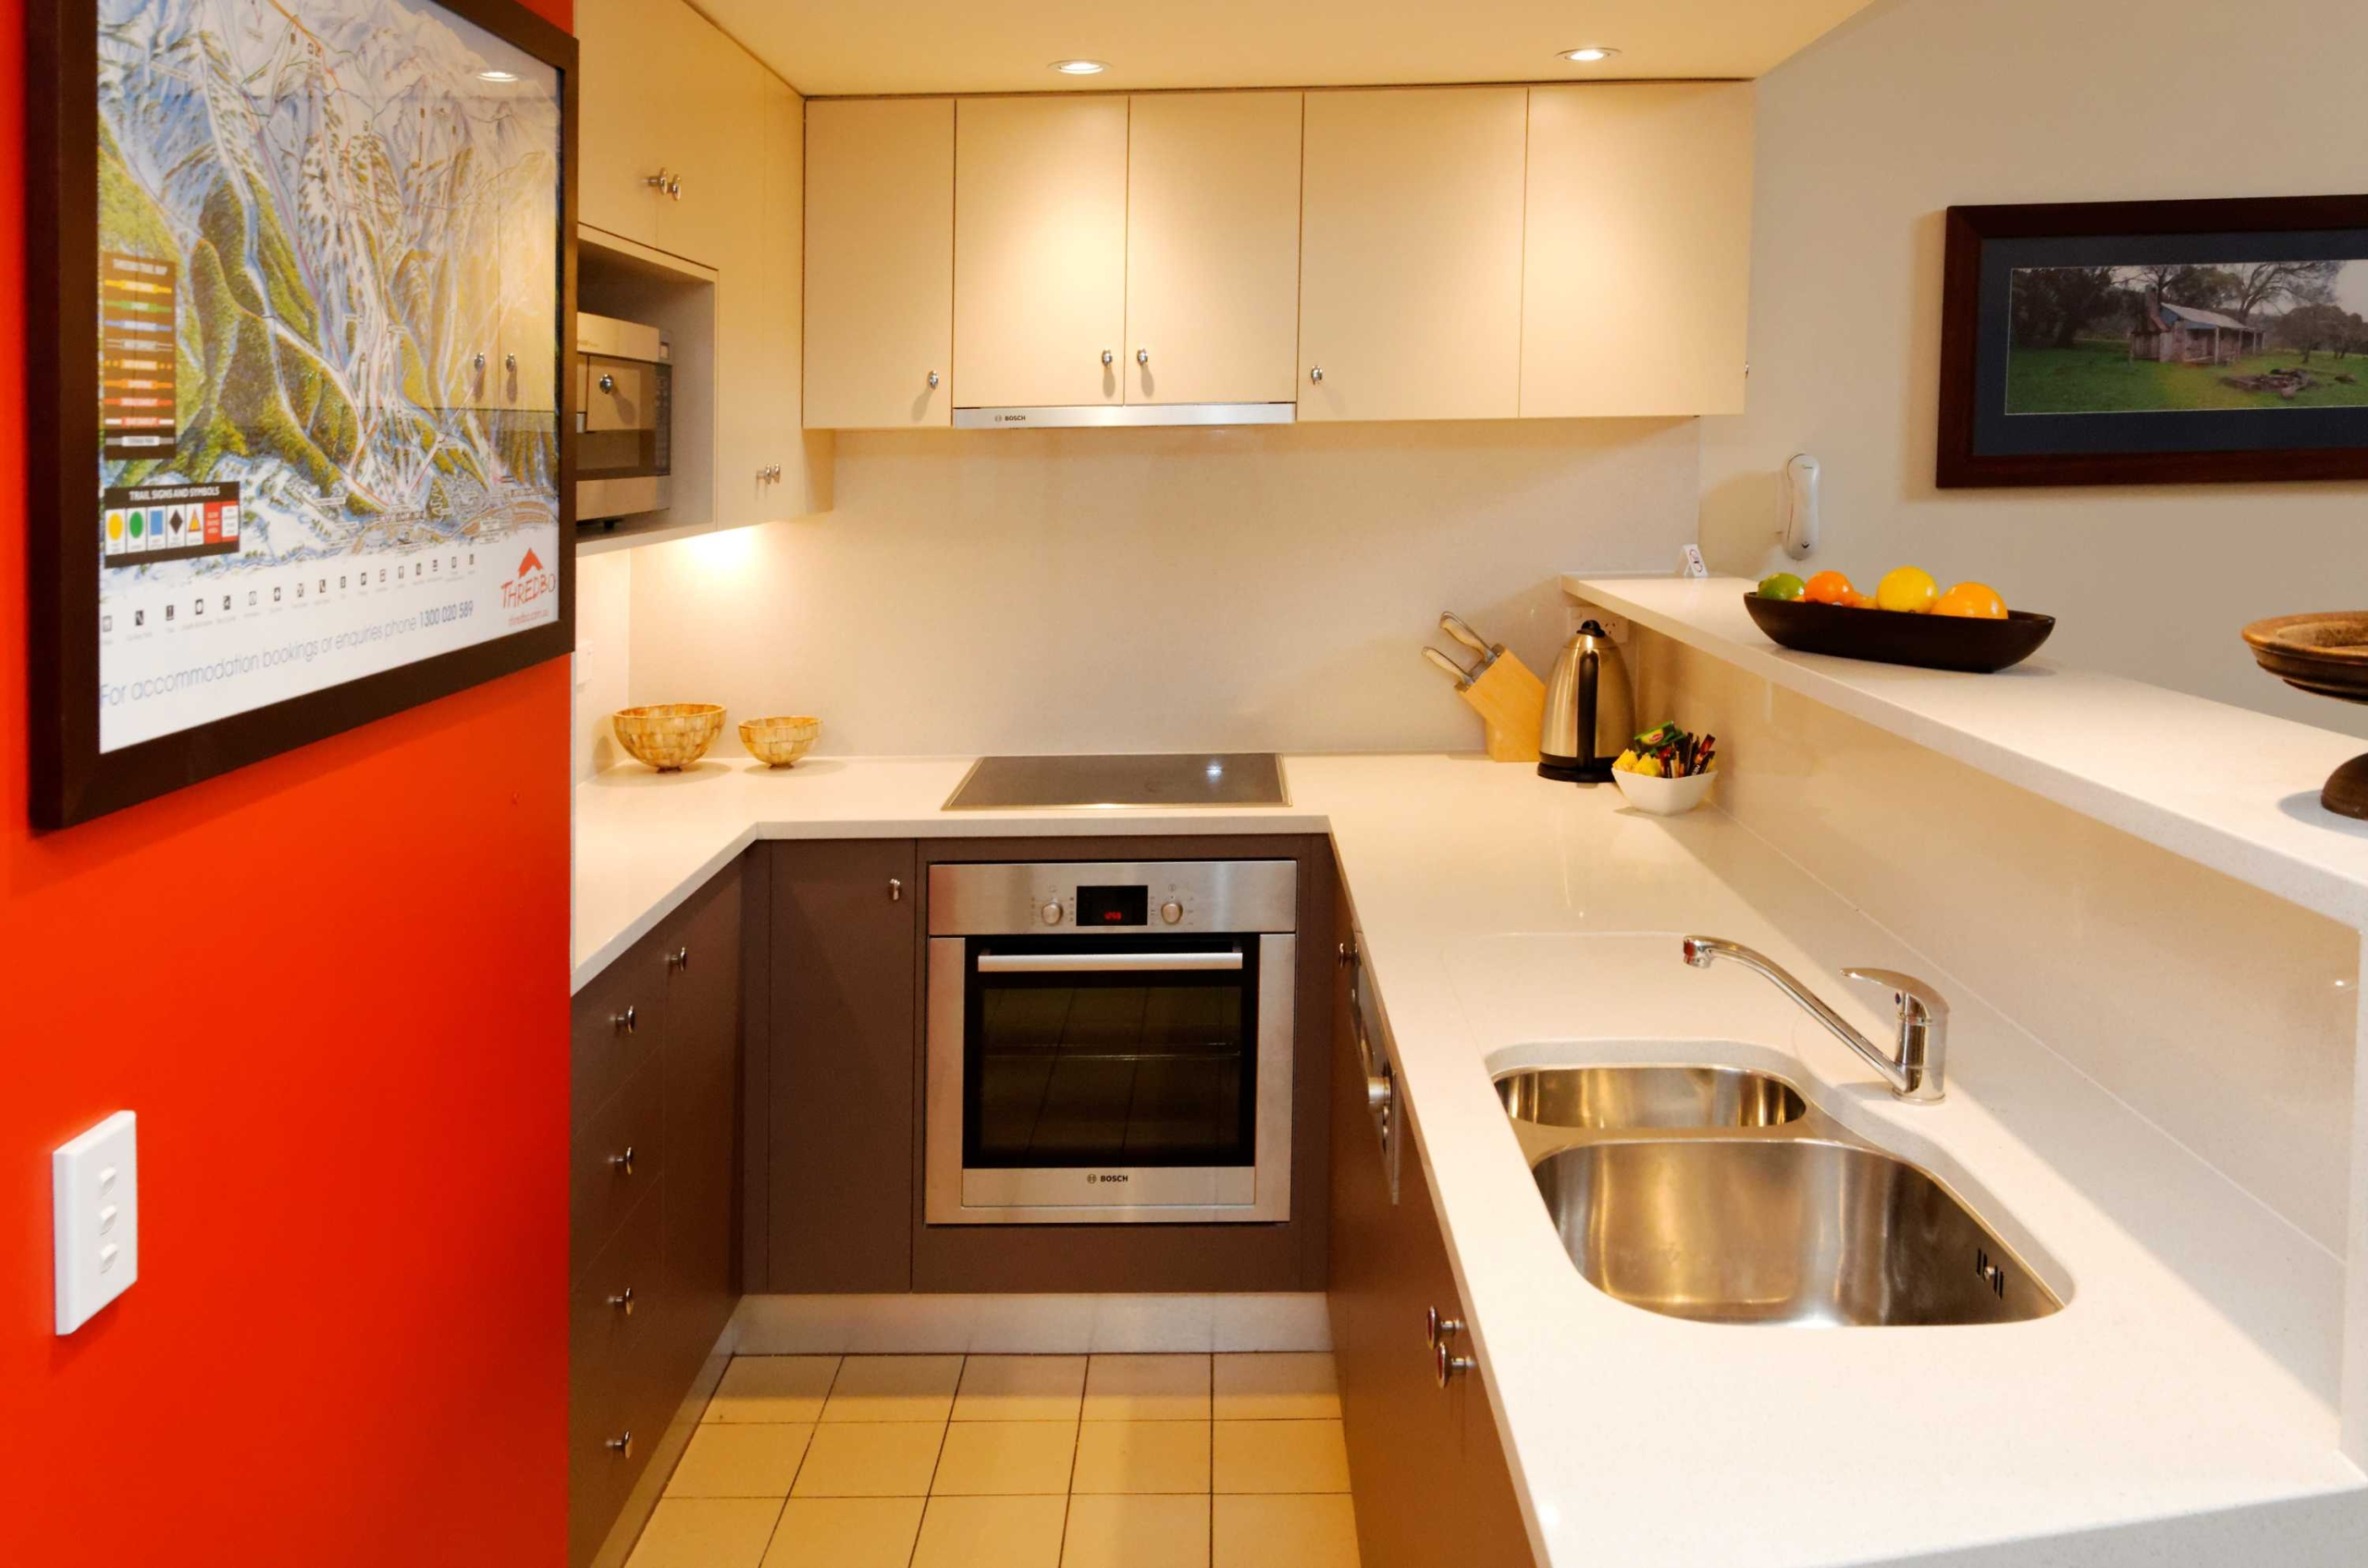 F10-Squatters-Run-Thredbo-Luxury-Apartments-1-Bed-Loft-Deluxe-Room-345-persons-see-squatters.com_.au-1-1-scaled